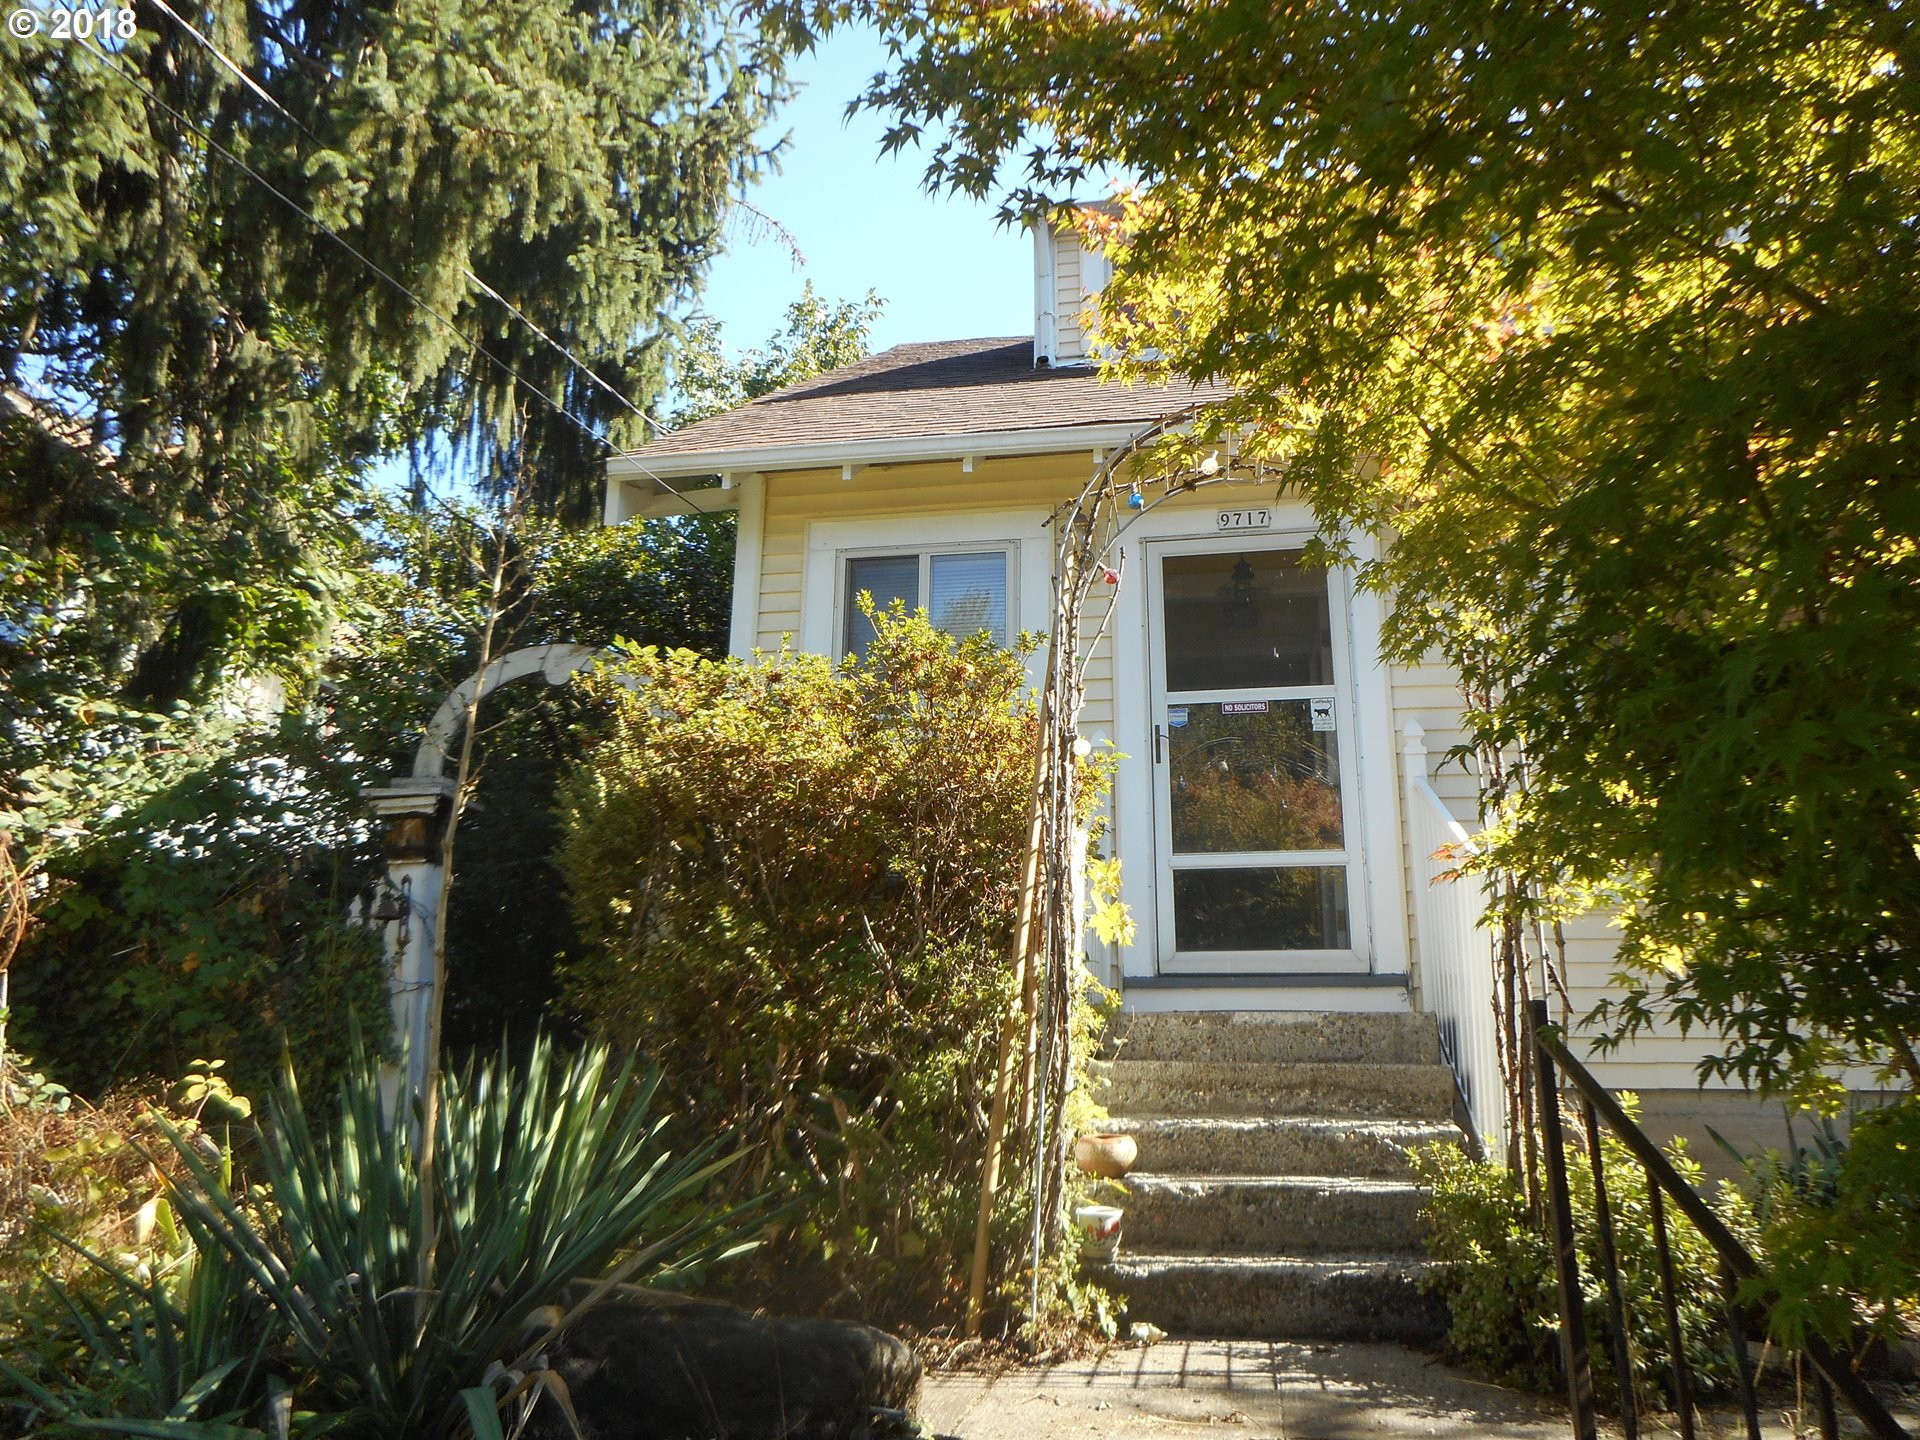 Photo of 9717 N SMITH ST Portland OR 97203